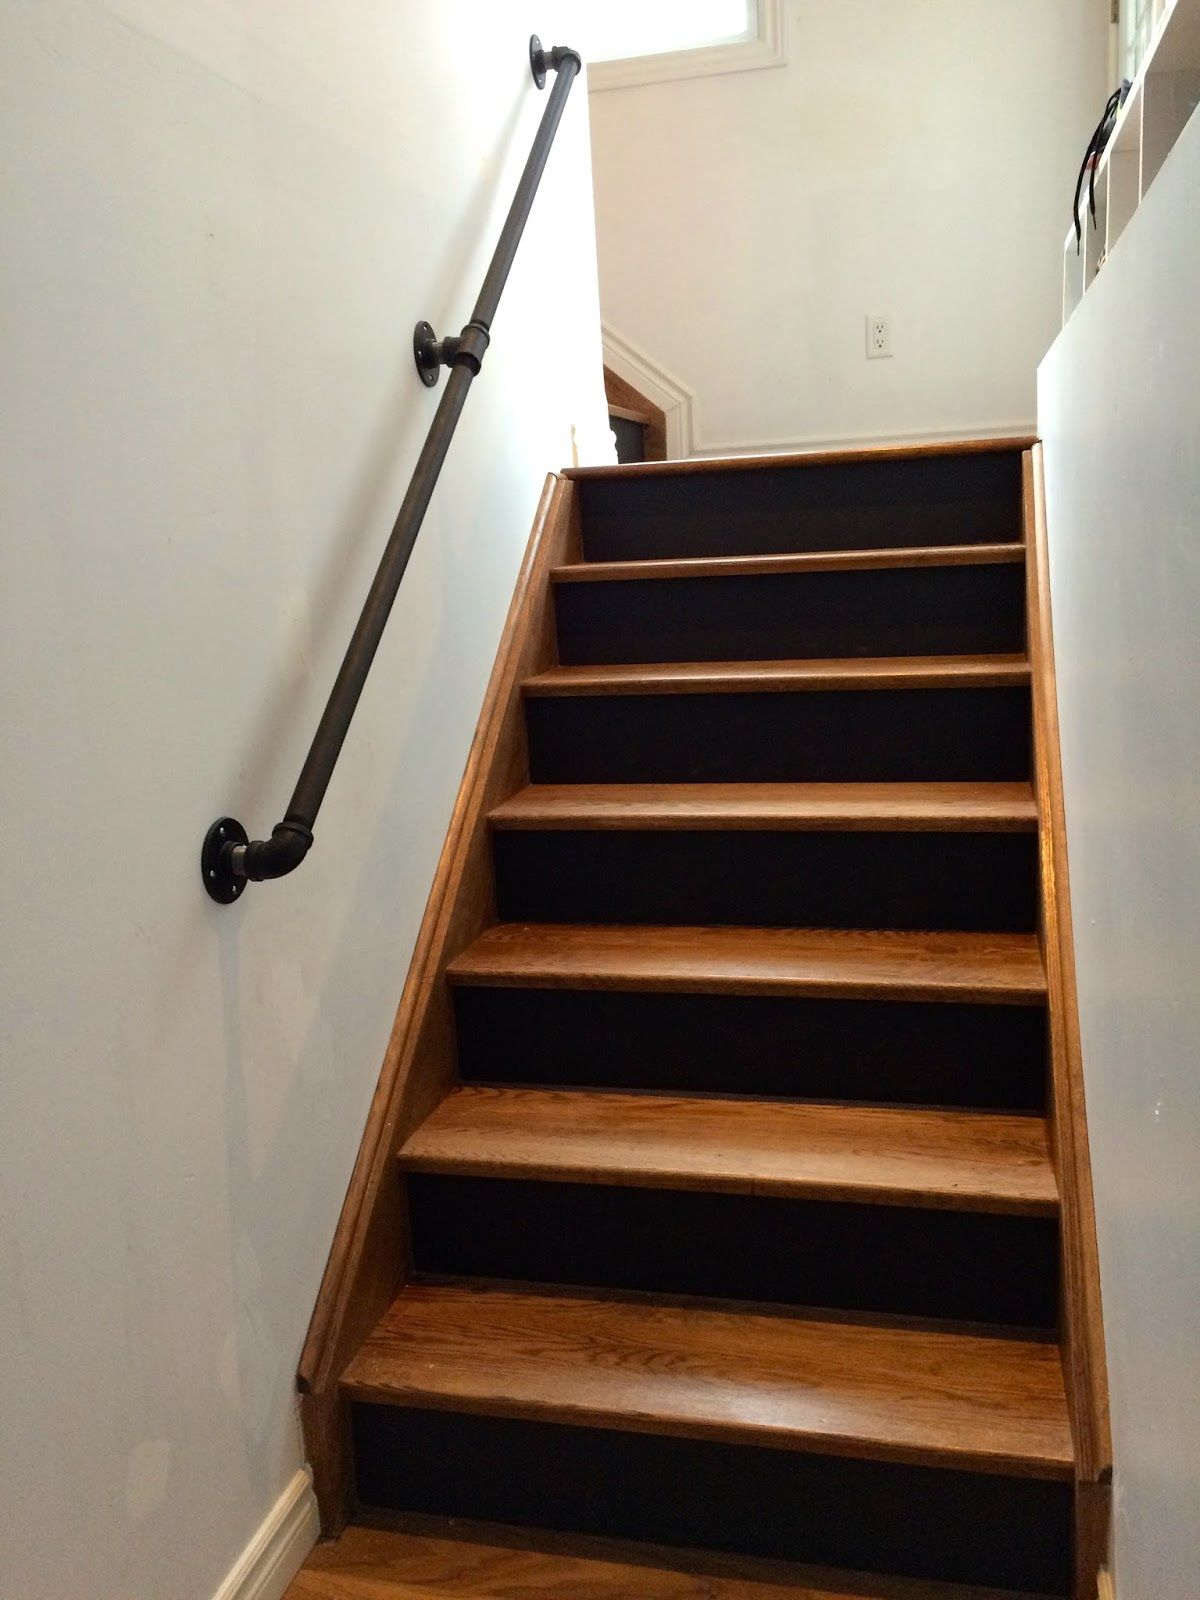 gas pipe railing, walnut stairs, black risers  | Stairs ...